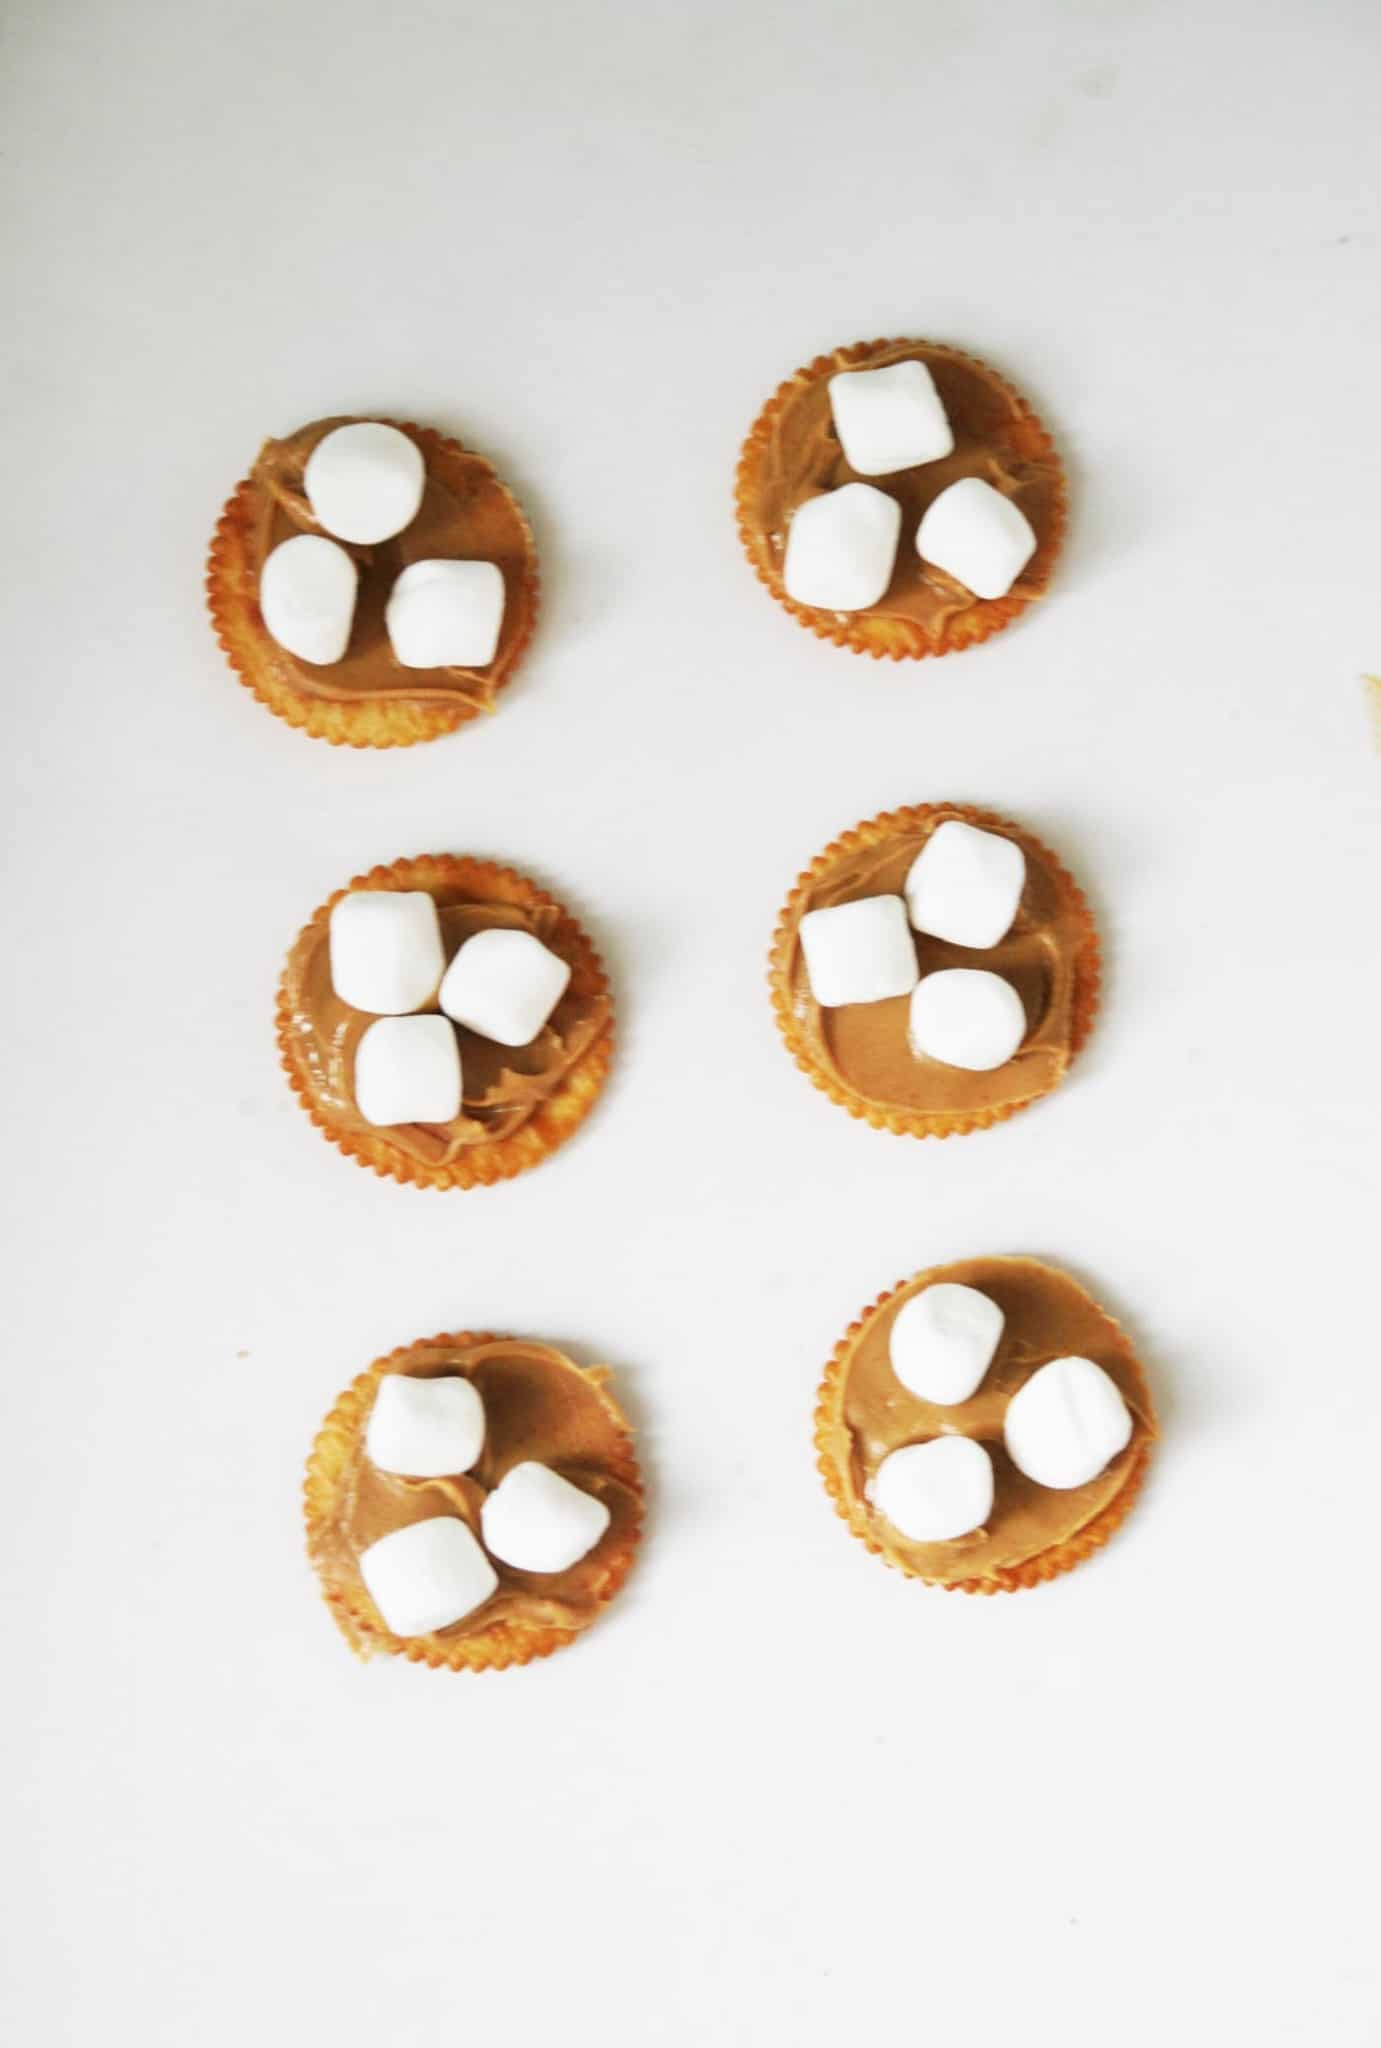 Salty, buttery Ritz crackers with sweet chocolate and marshmallows are a match made in heaven! This cookie recipe is easy and delicious.